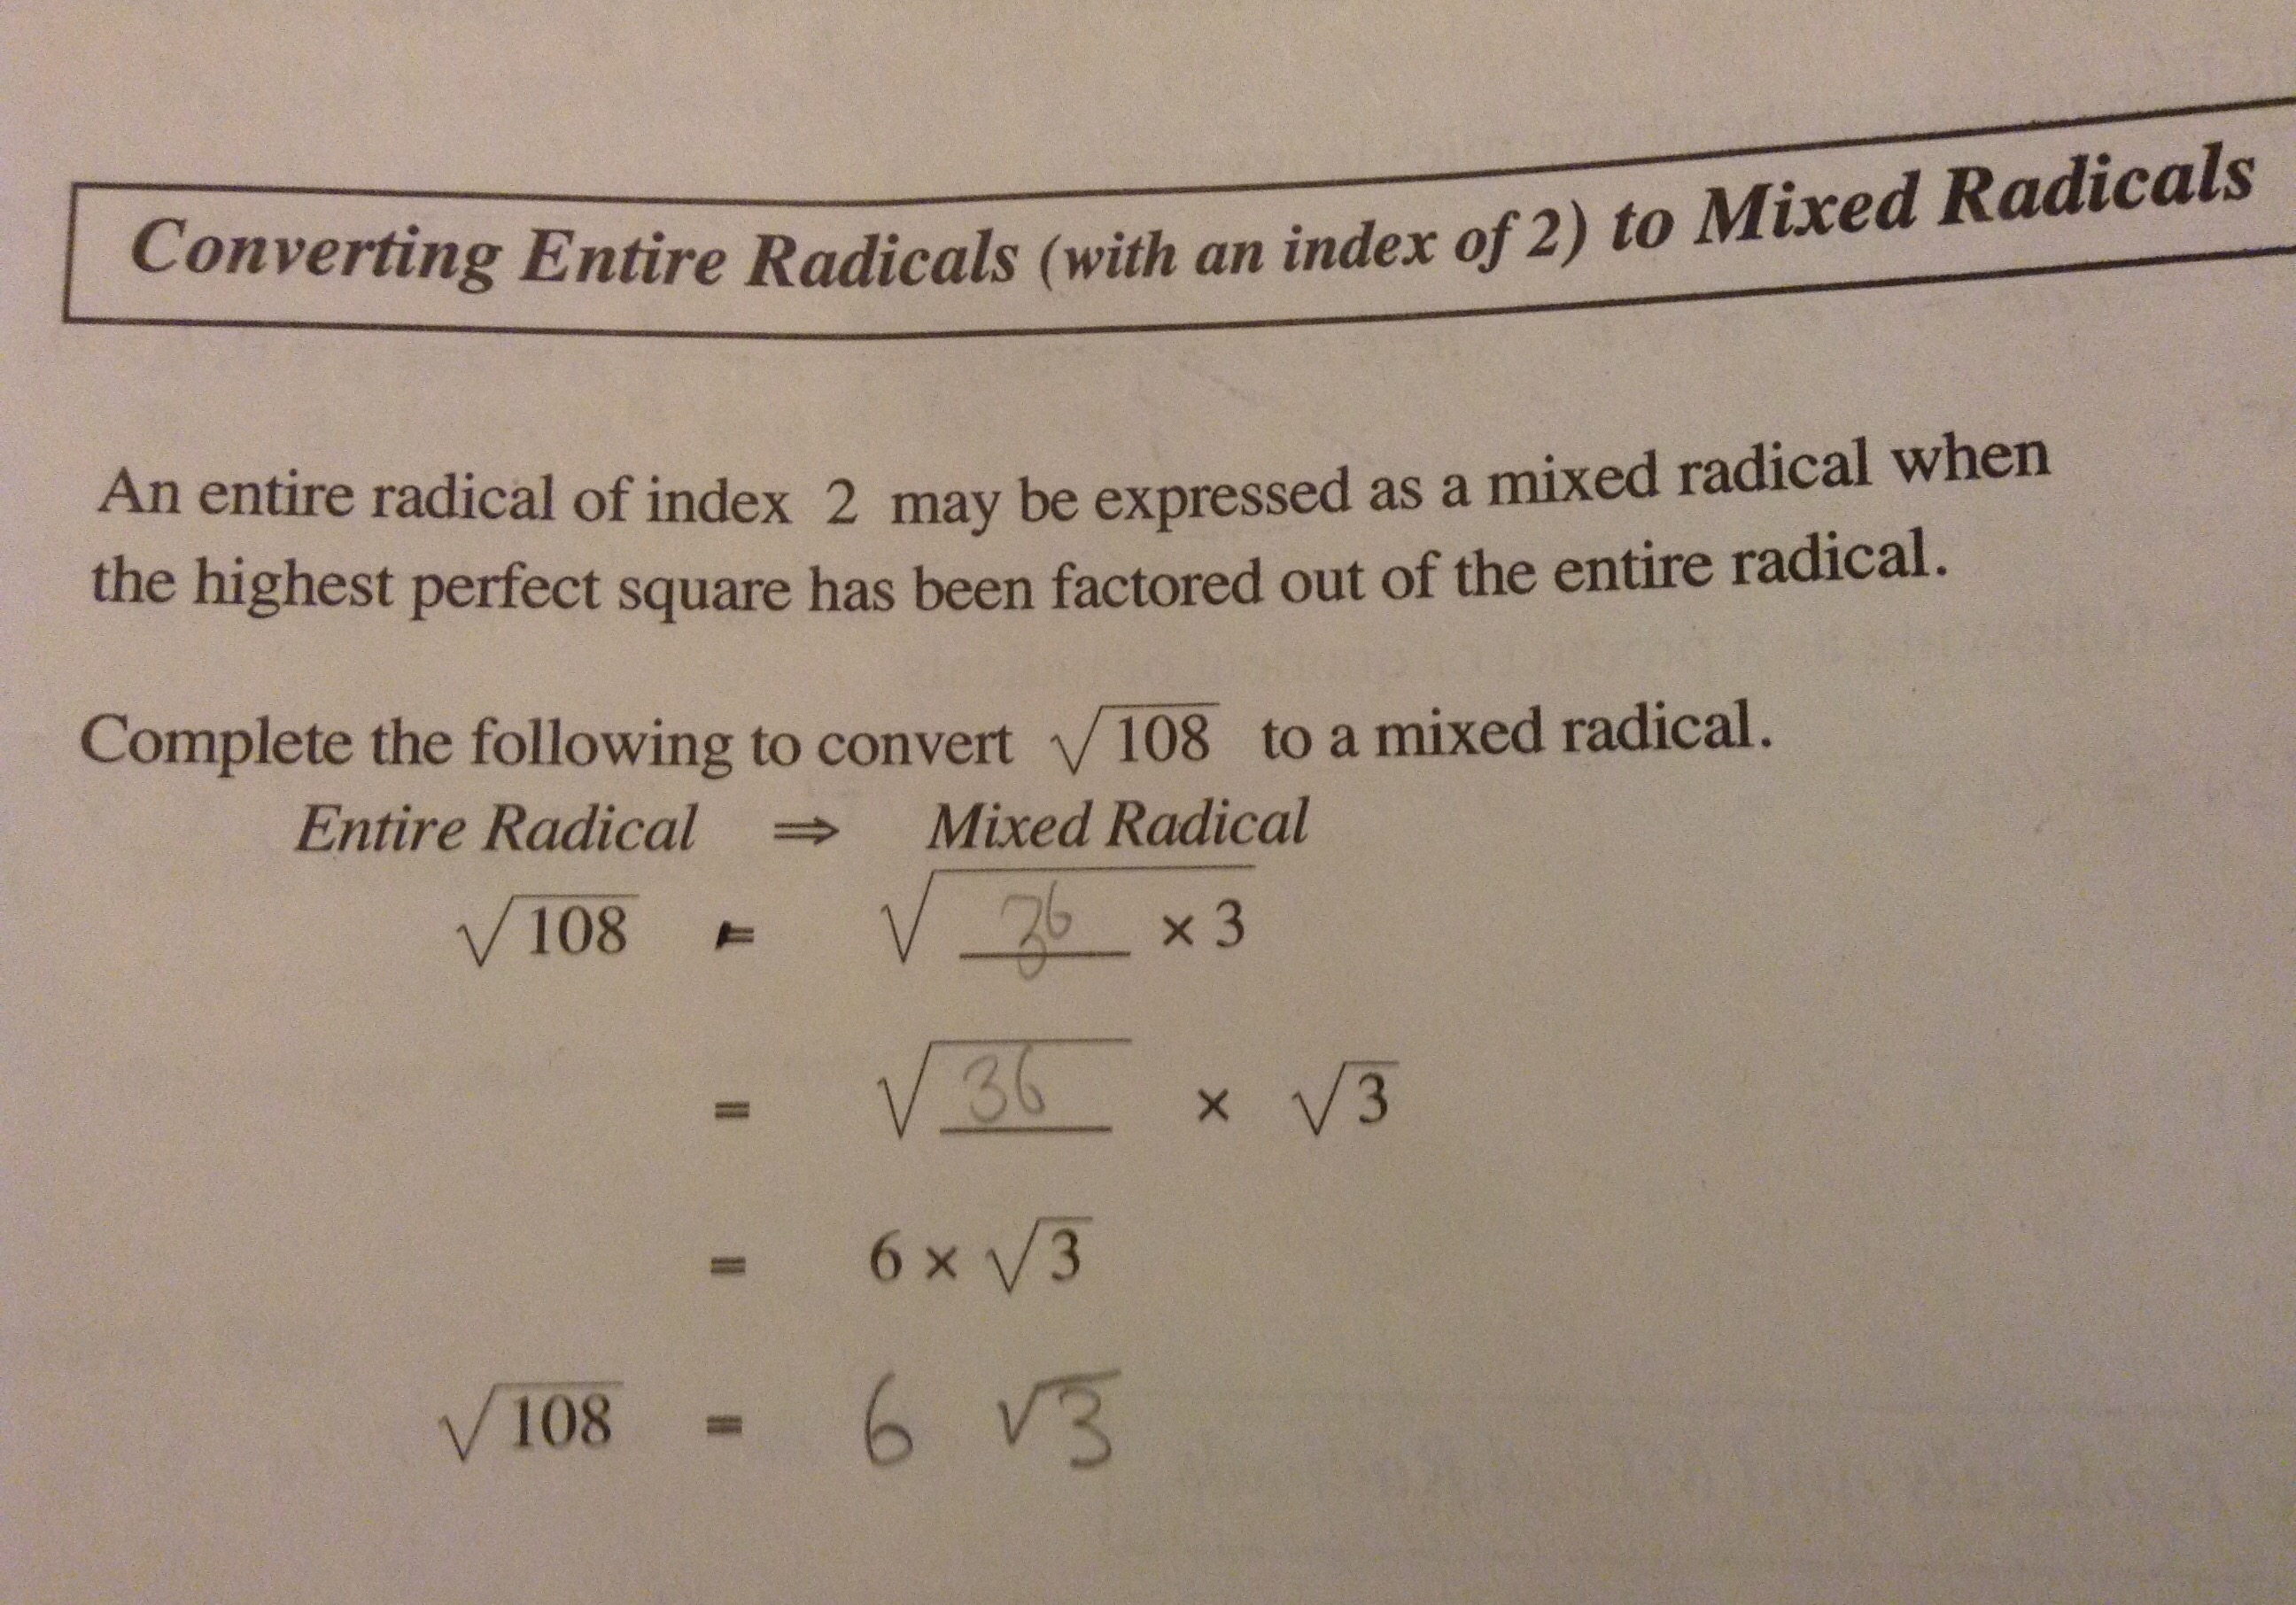 how to change entire radicals to mixed